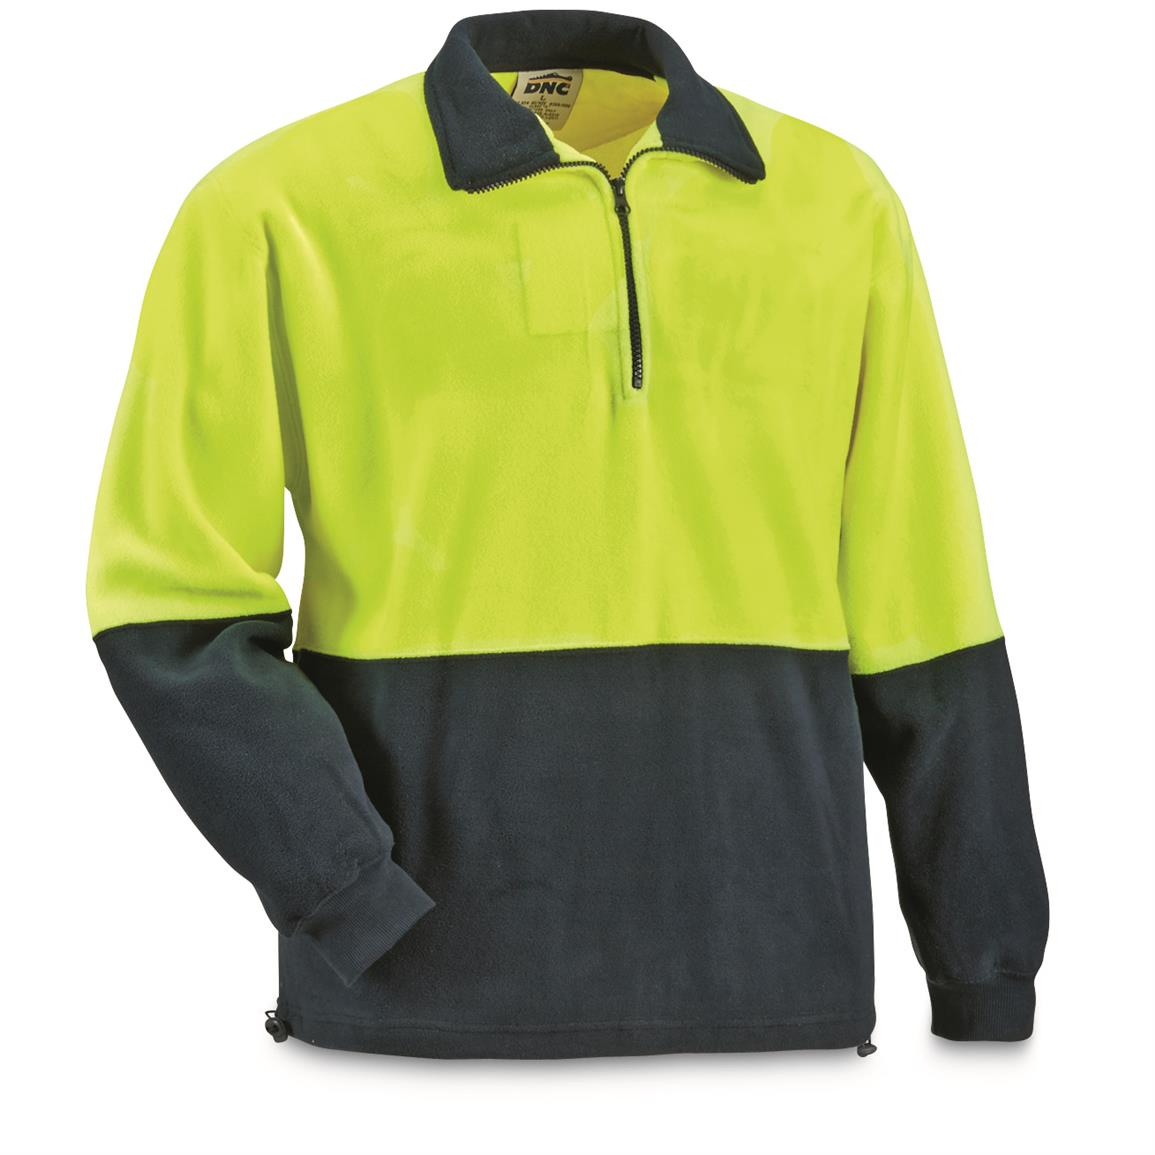 British Municipal Hi Vis Fleece Pullover Jackets, 2 Pack, New